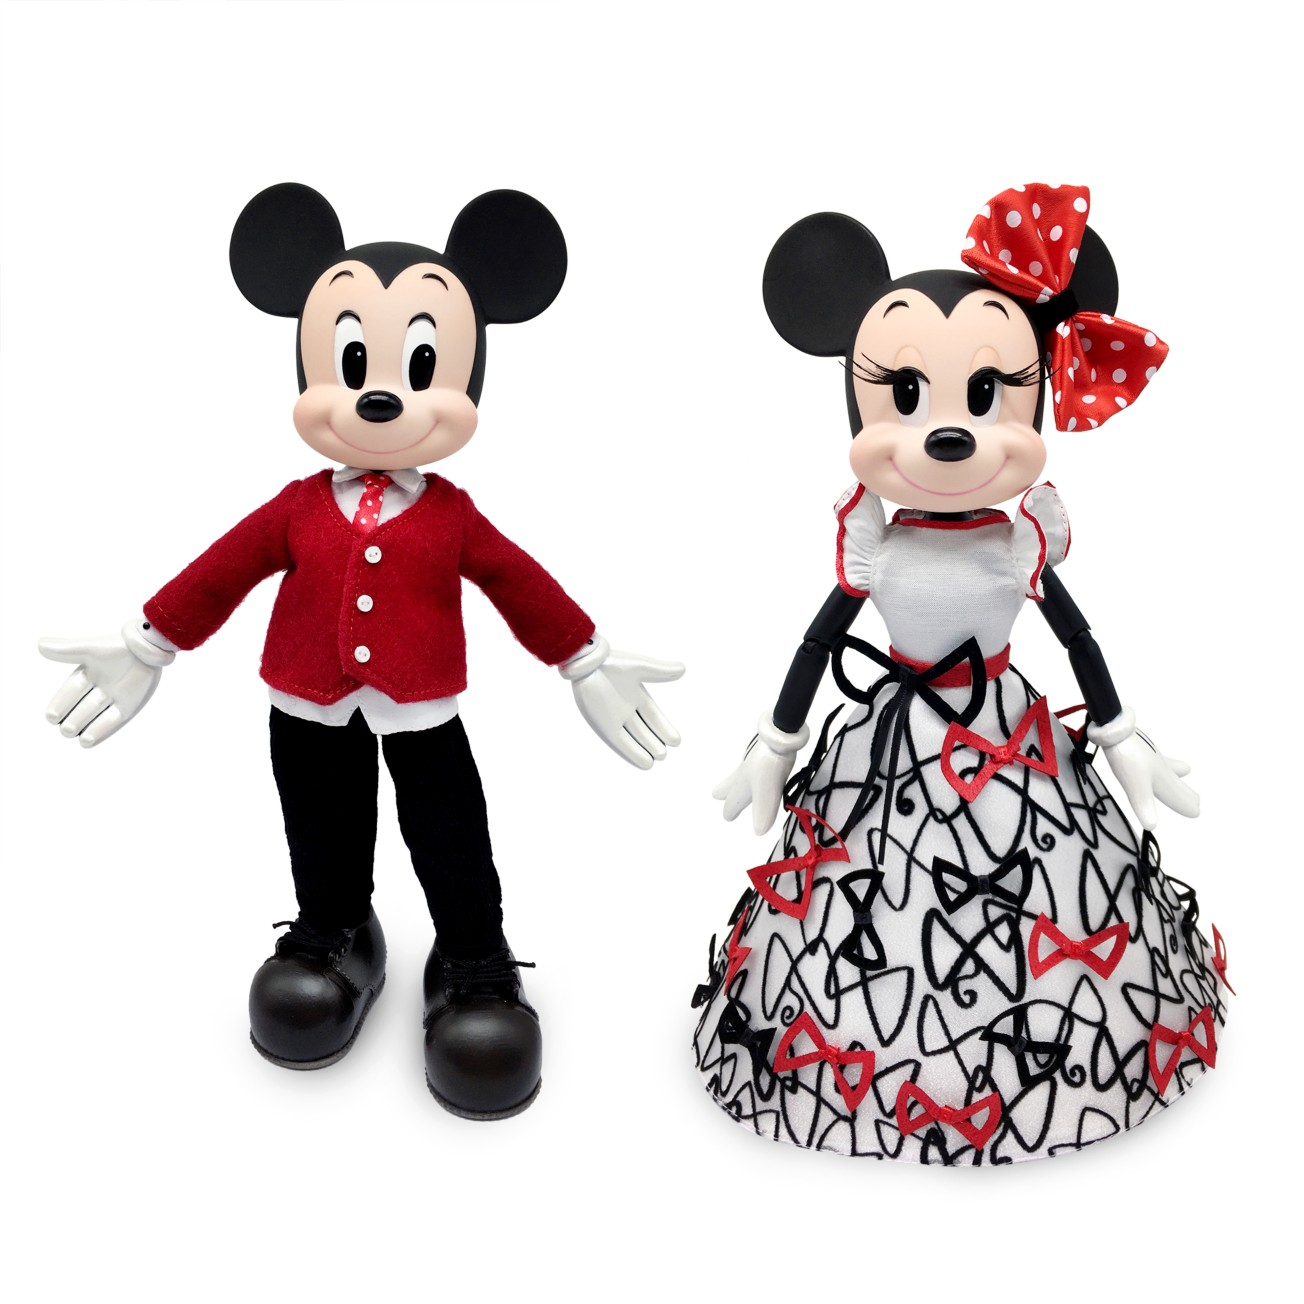 Disney Mickey and Minnie Mouse Limited Edition Sweethearts Doll Set